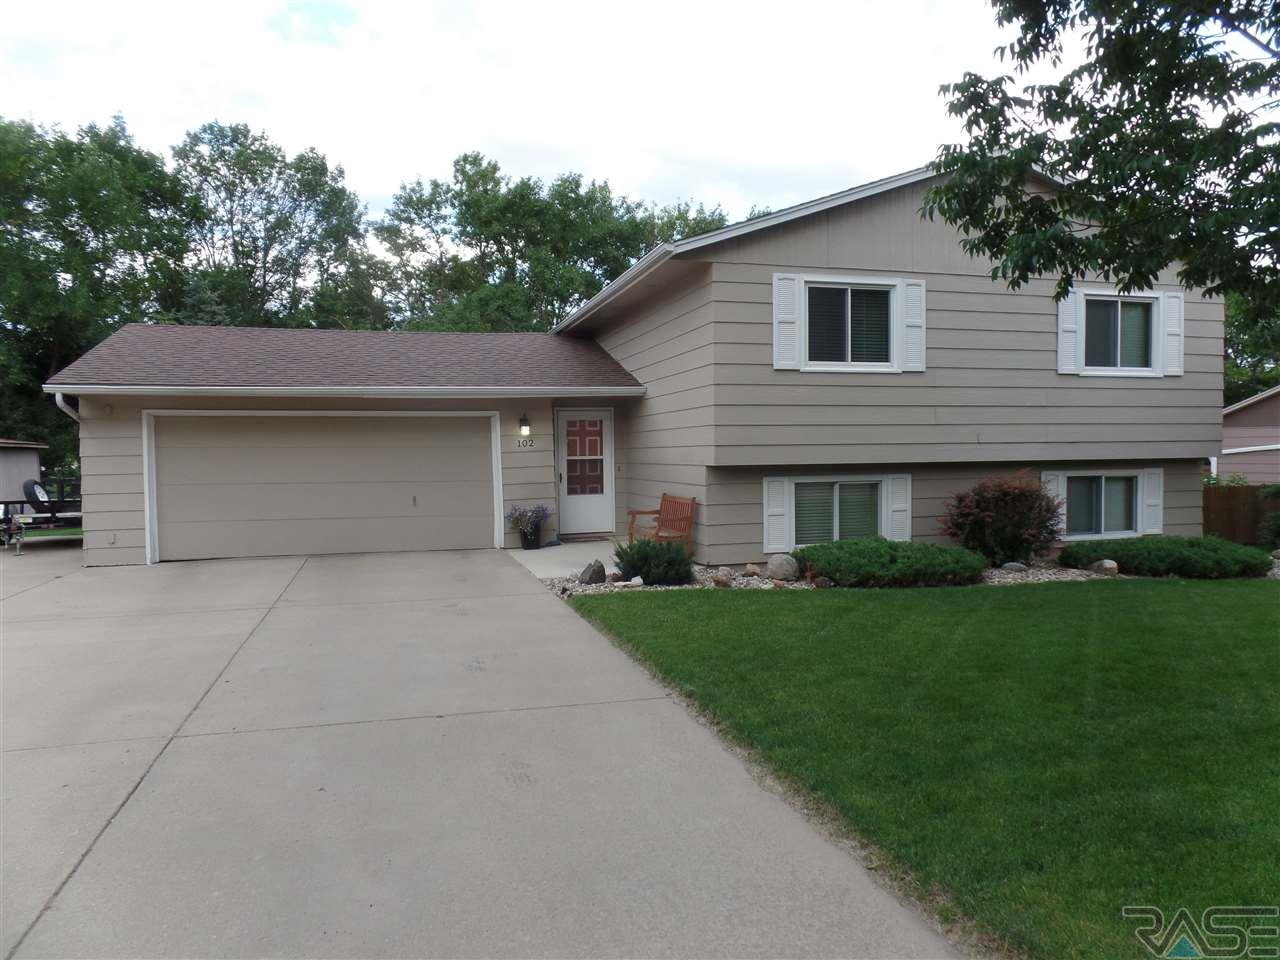 102 S Kelley Ave, Hartford, SD 57033